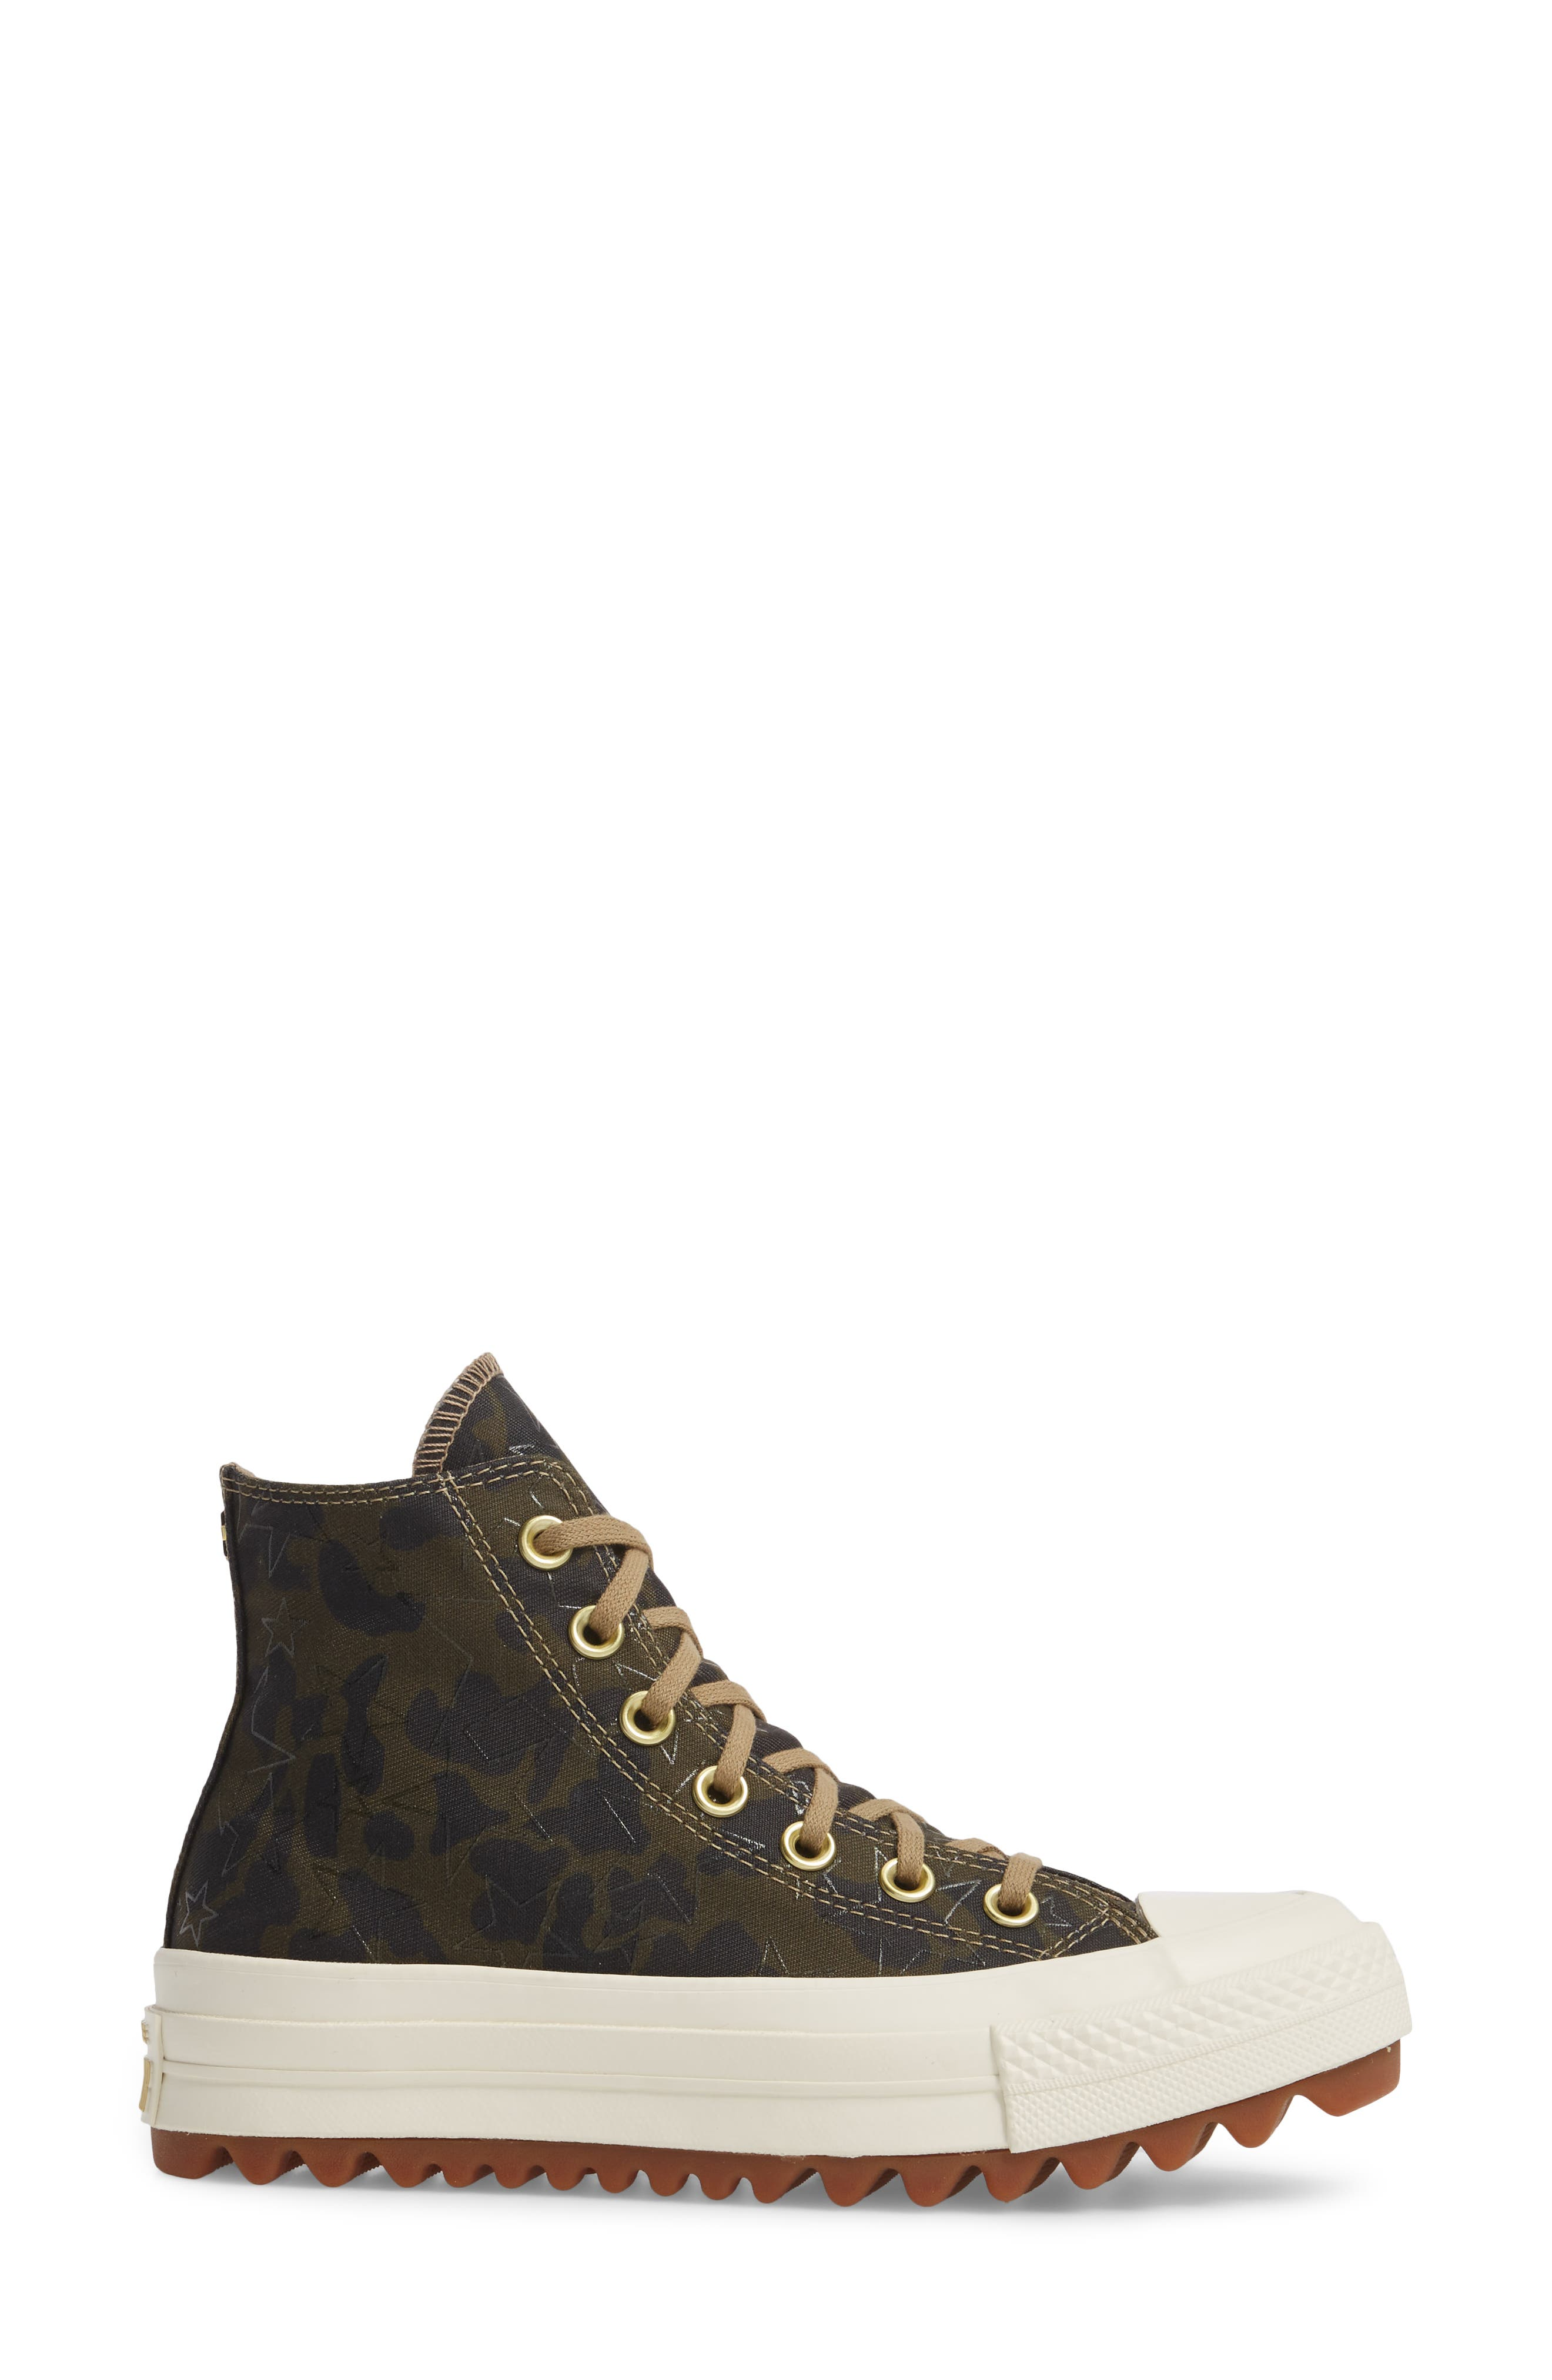 Chuck Taylor<sup>®</sup> All Star<sup>®</sup> Lift Ripple High Top Sneaker,                             Alternate thumbnail 3, color,                             300